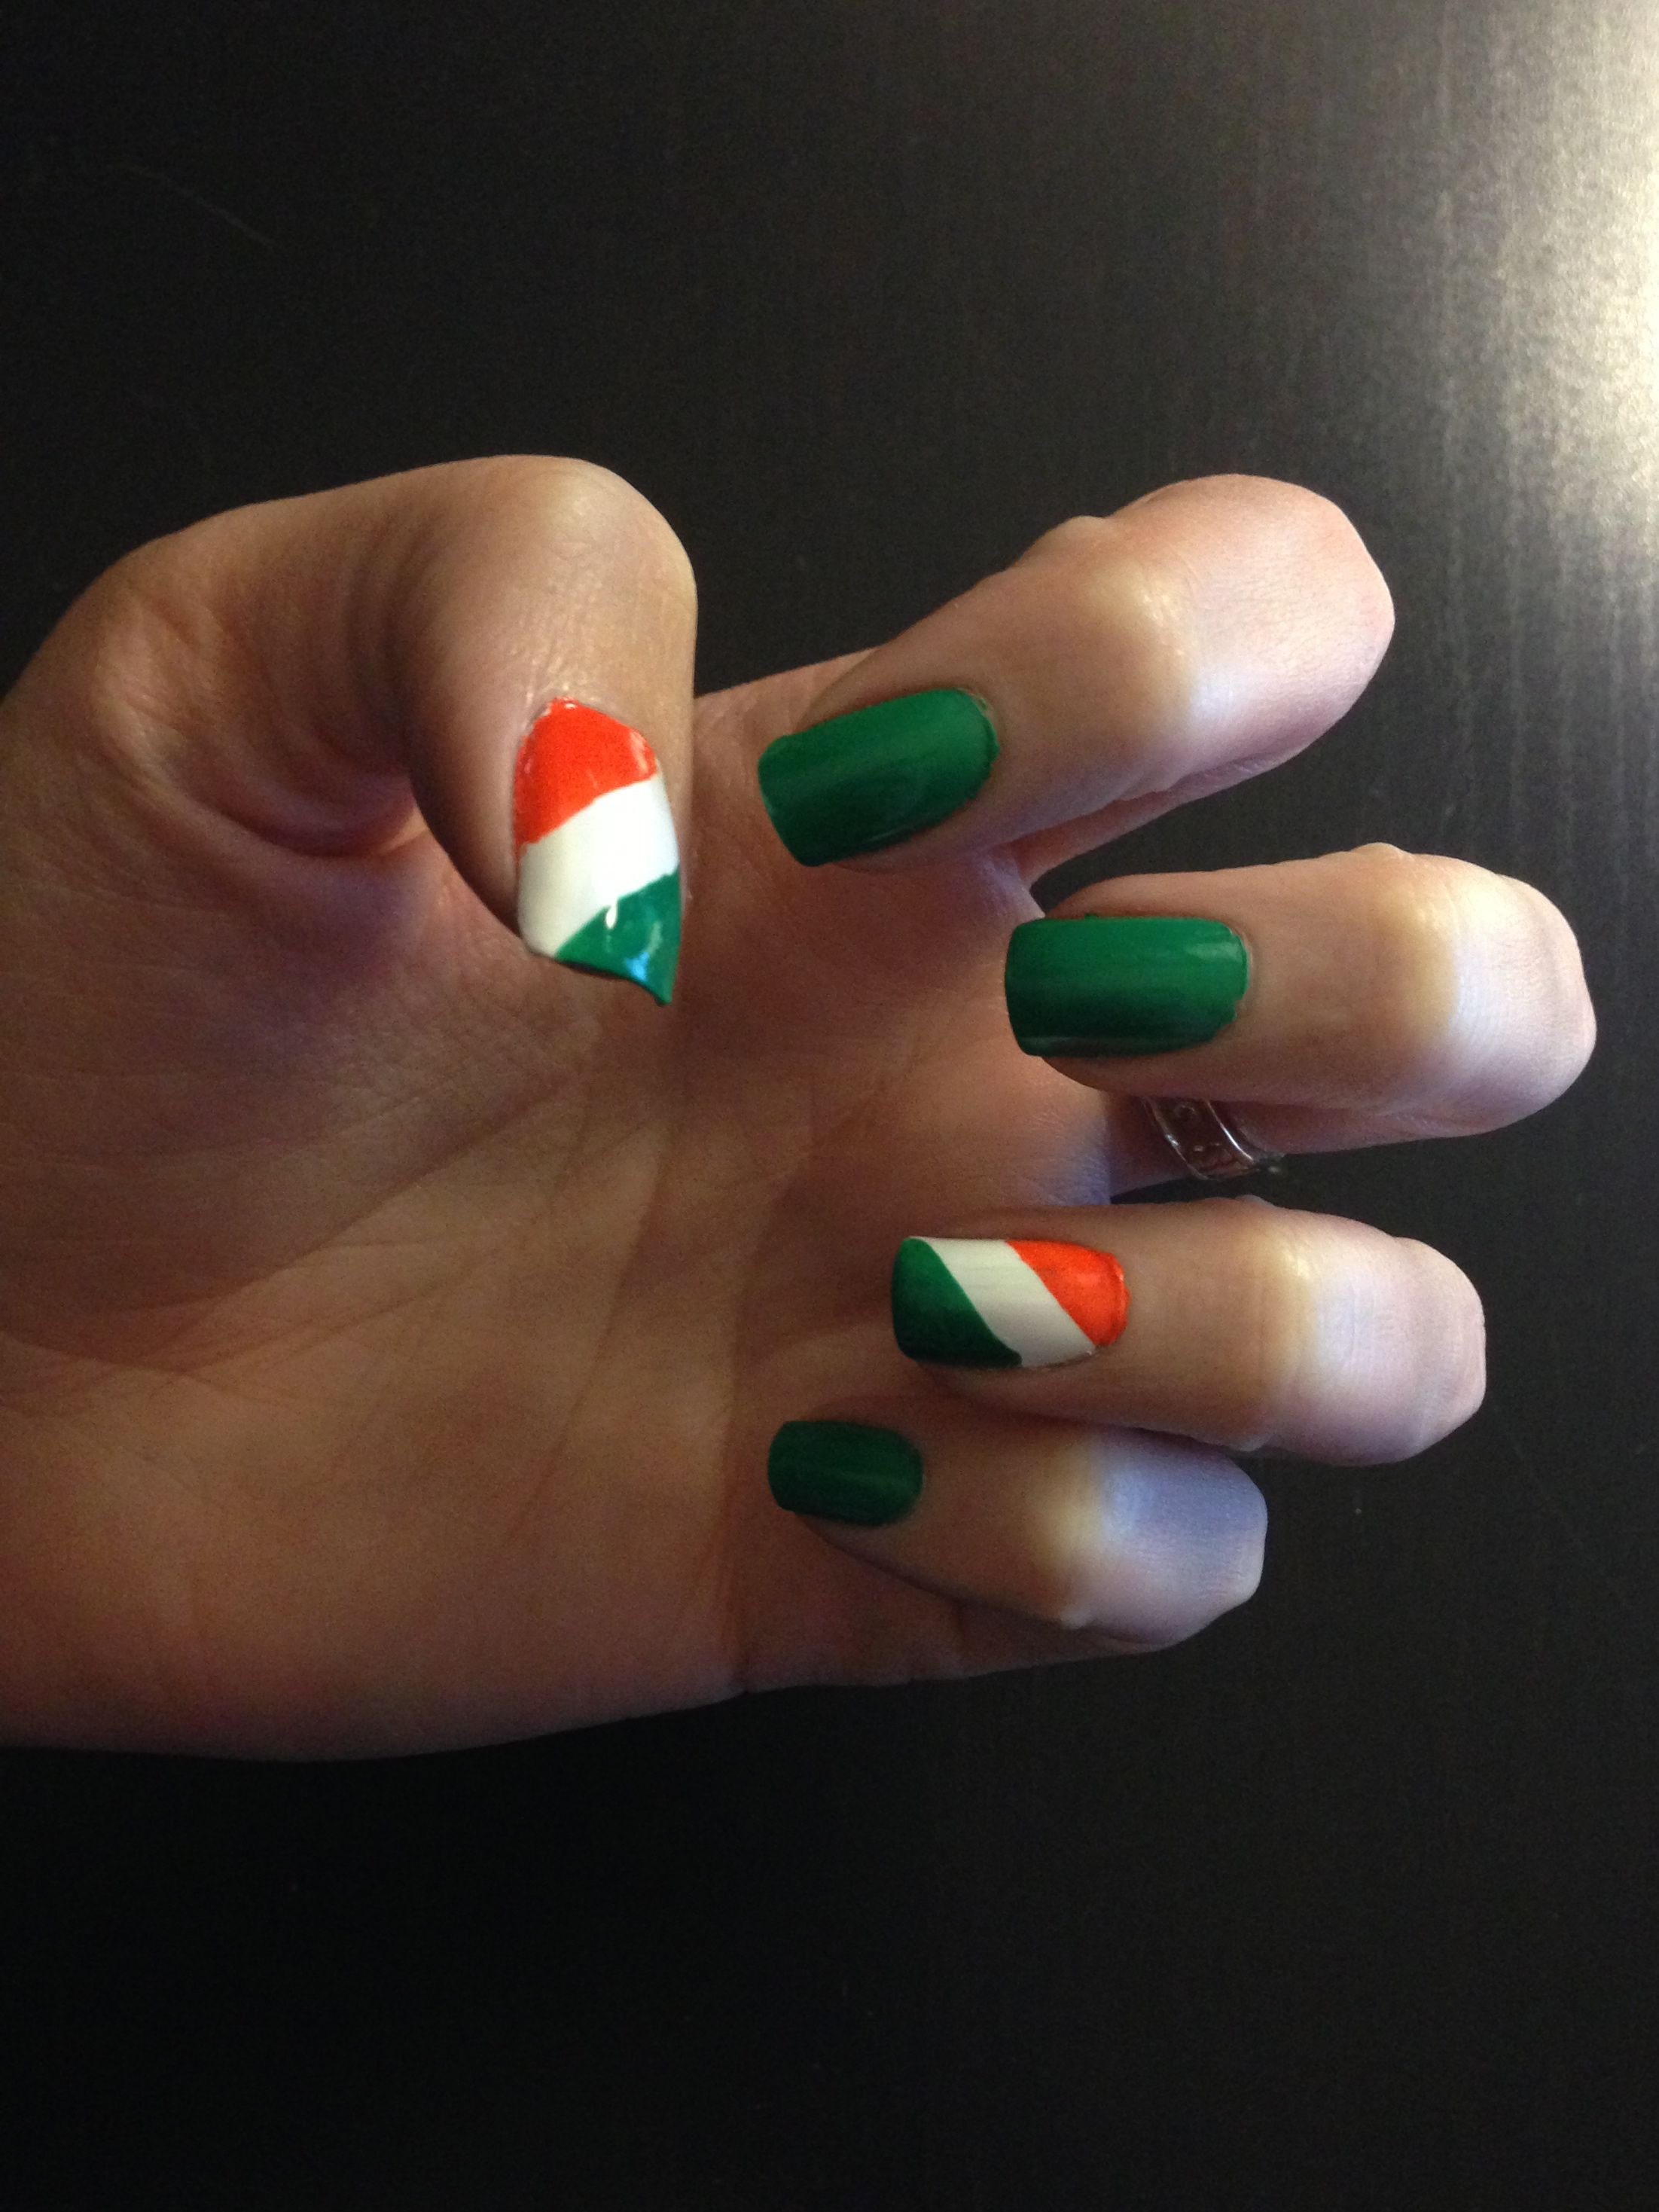 Irish Nails | My nail creations | Pinterest | Irish nails, Irish ...